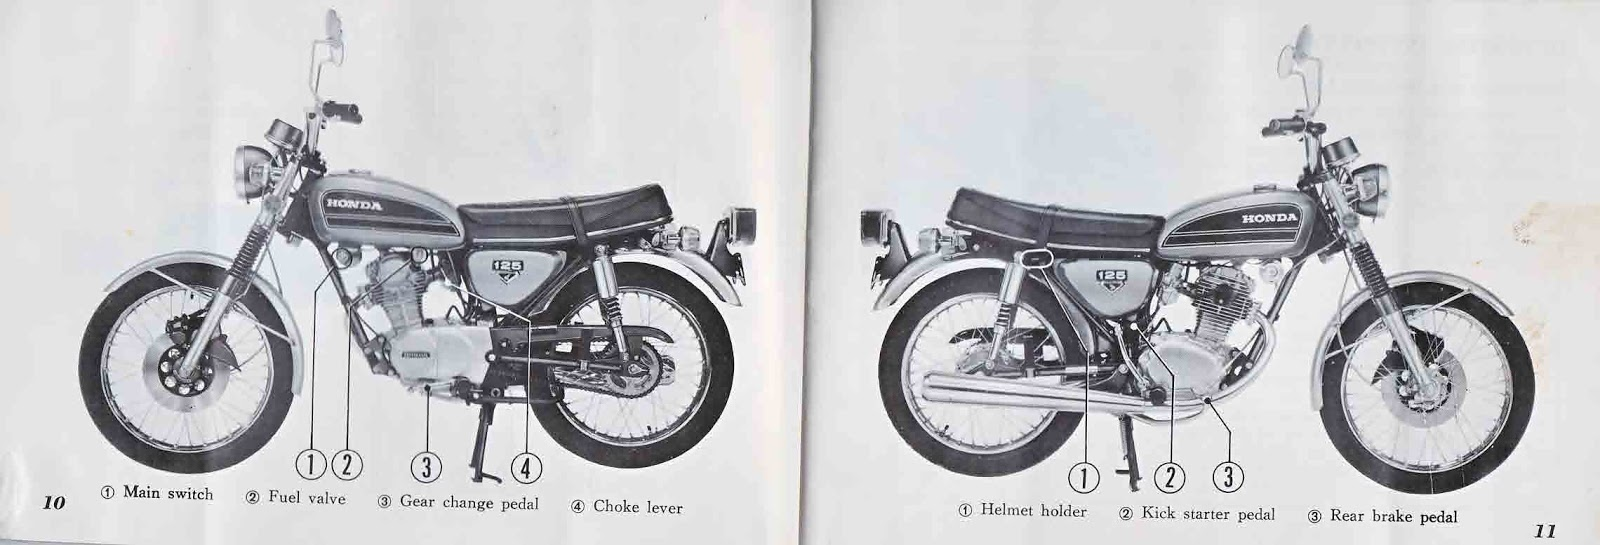 Restored Motorcycle Style: Honda CB125S Owner's Manual